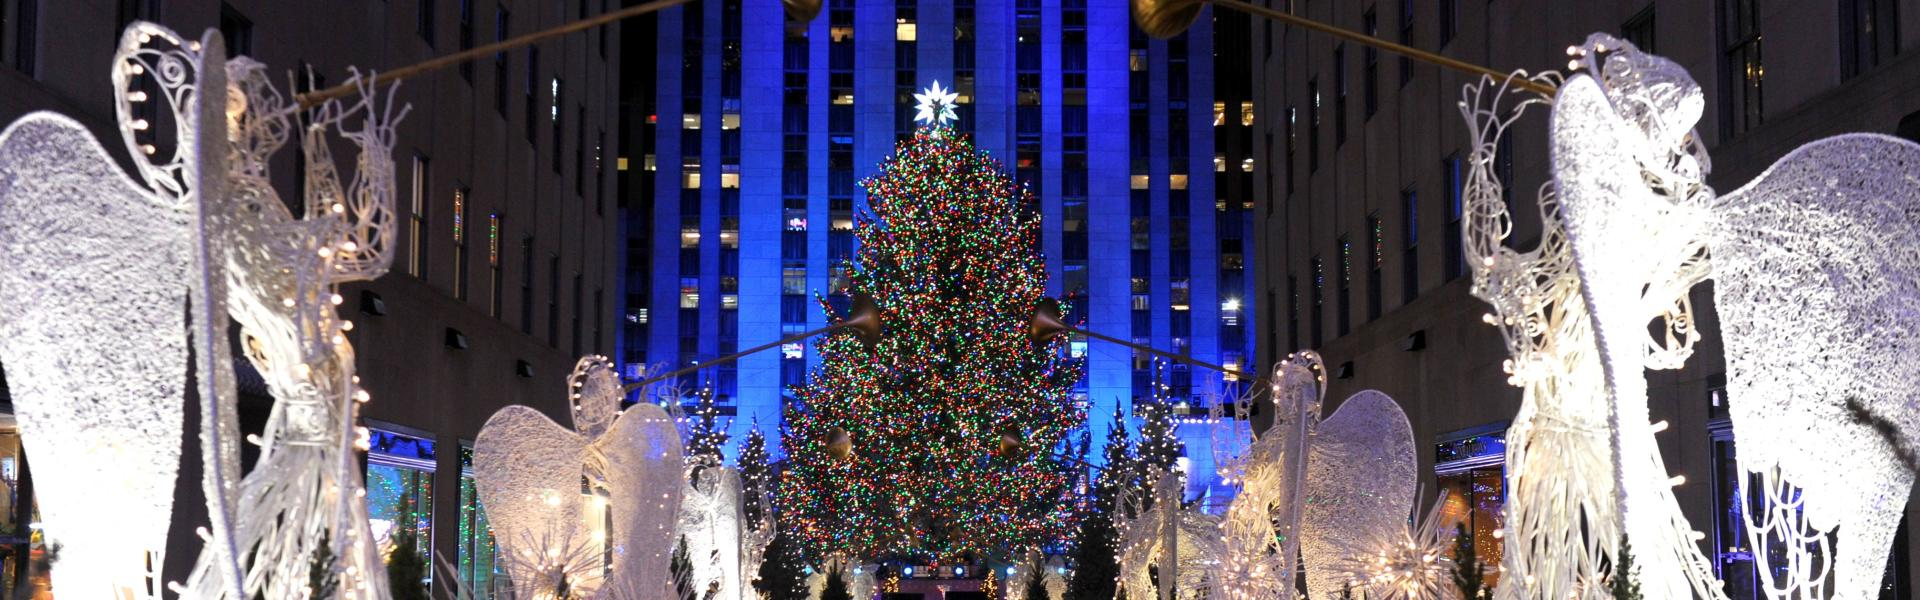 rockefeller center, christmas tree, holiday